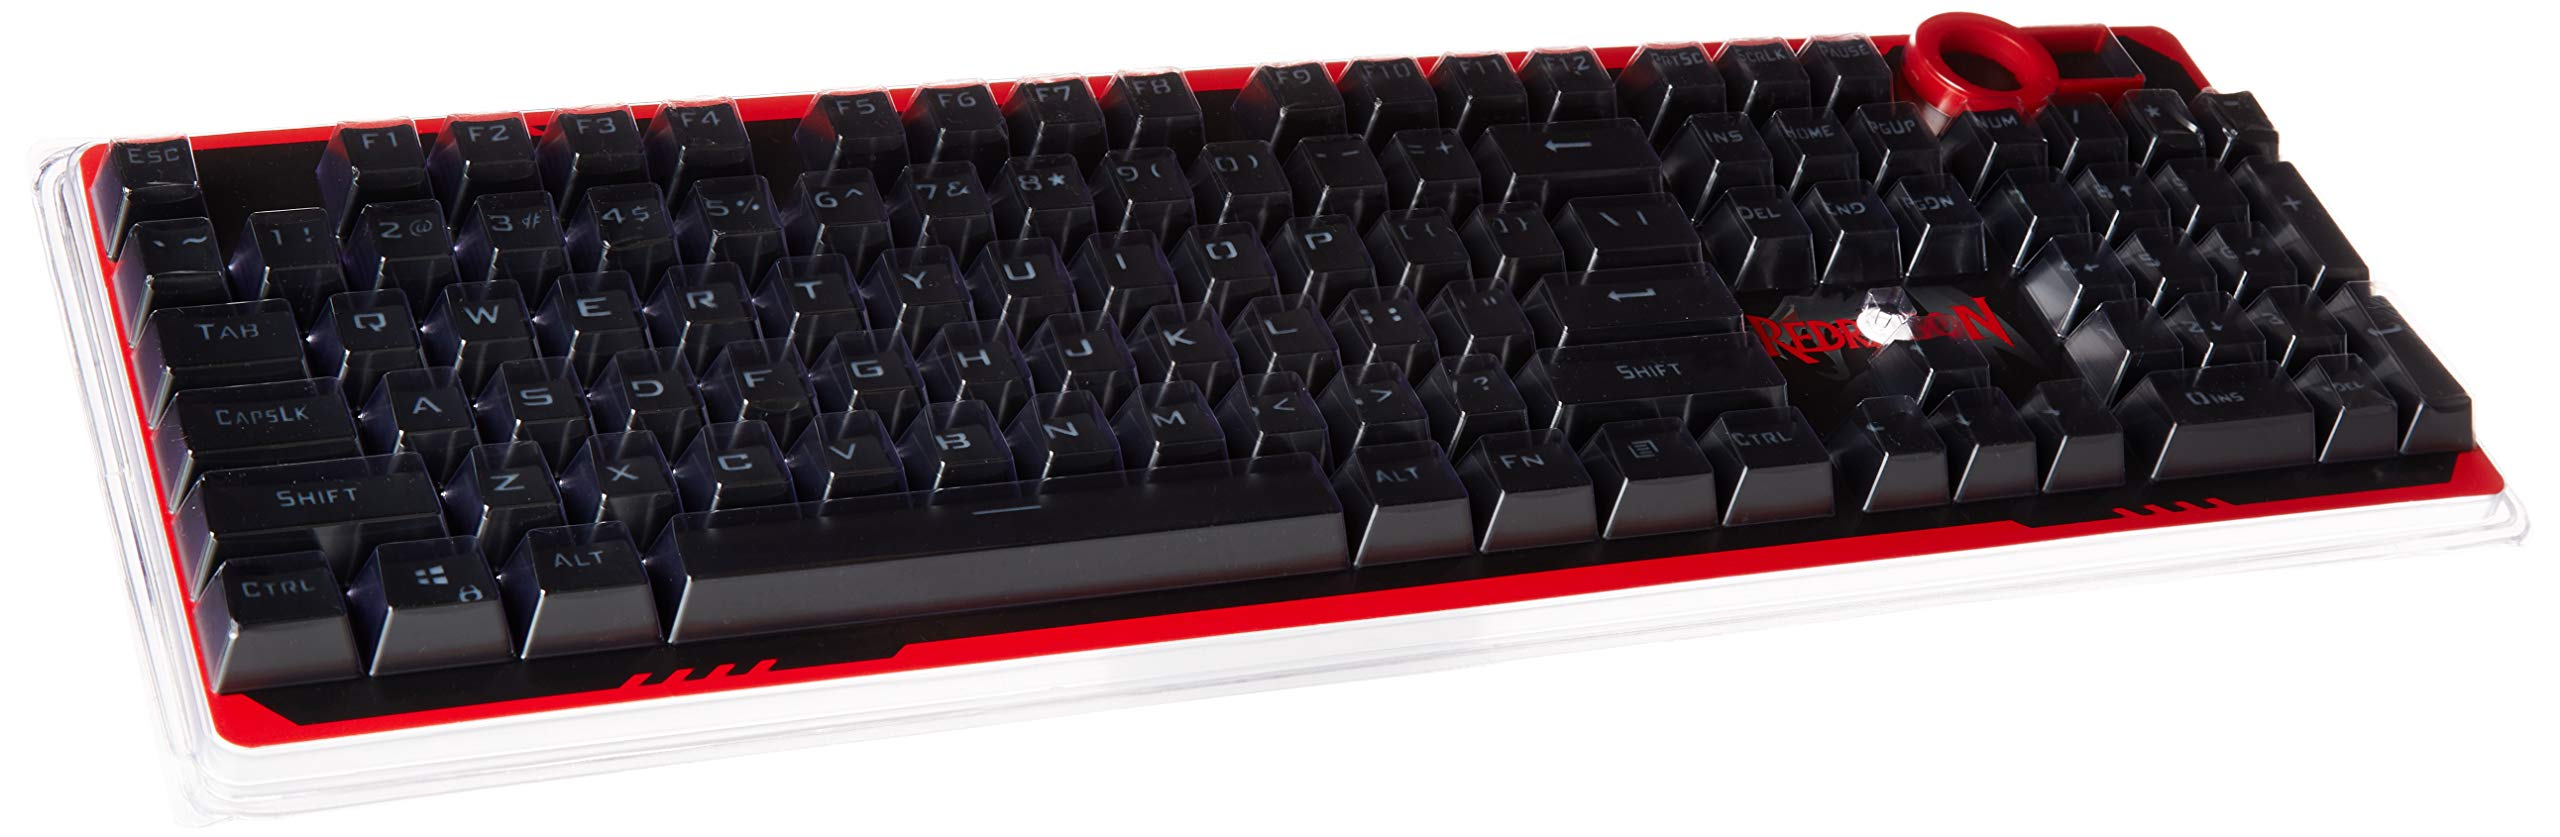 Redragon A101 Replacement Keycaps,104 Keyboard Keycaps, Cherry MX Compatible, Mechanical Keyboard Keycaps Inclusive Keypuller for Mechanical Keyboard (Black)